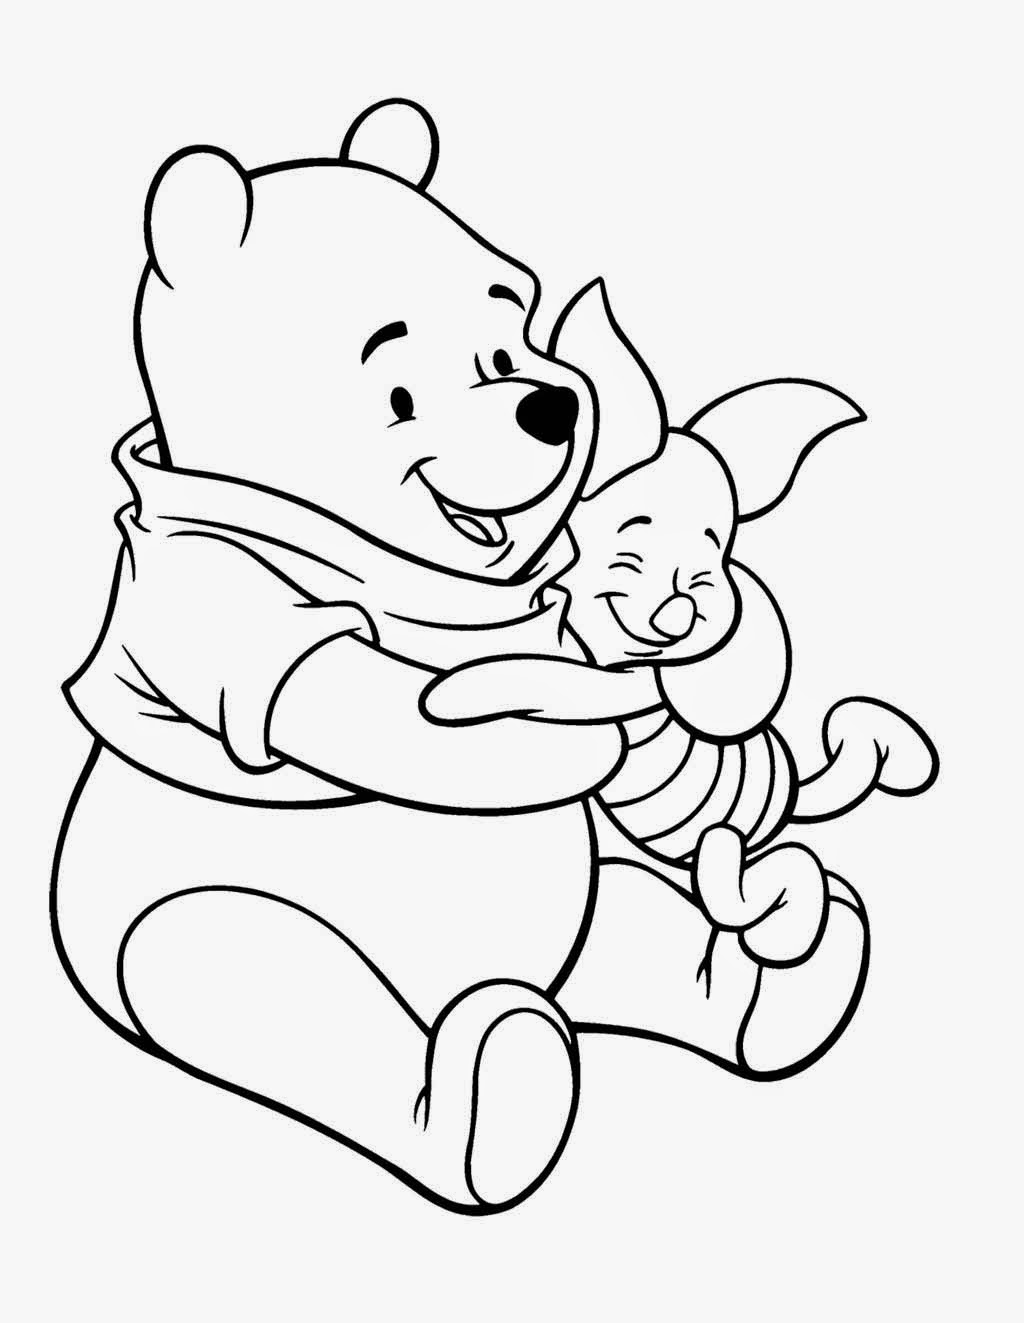 the pohh coloring pages - photo#37